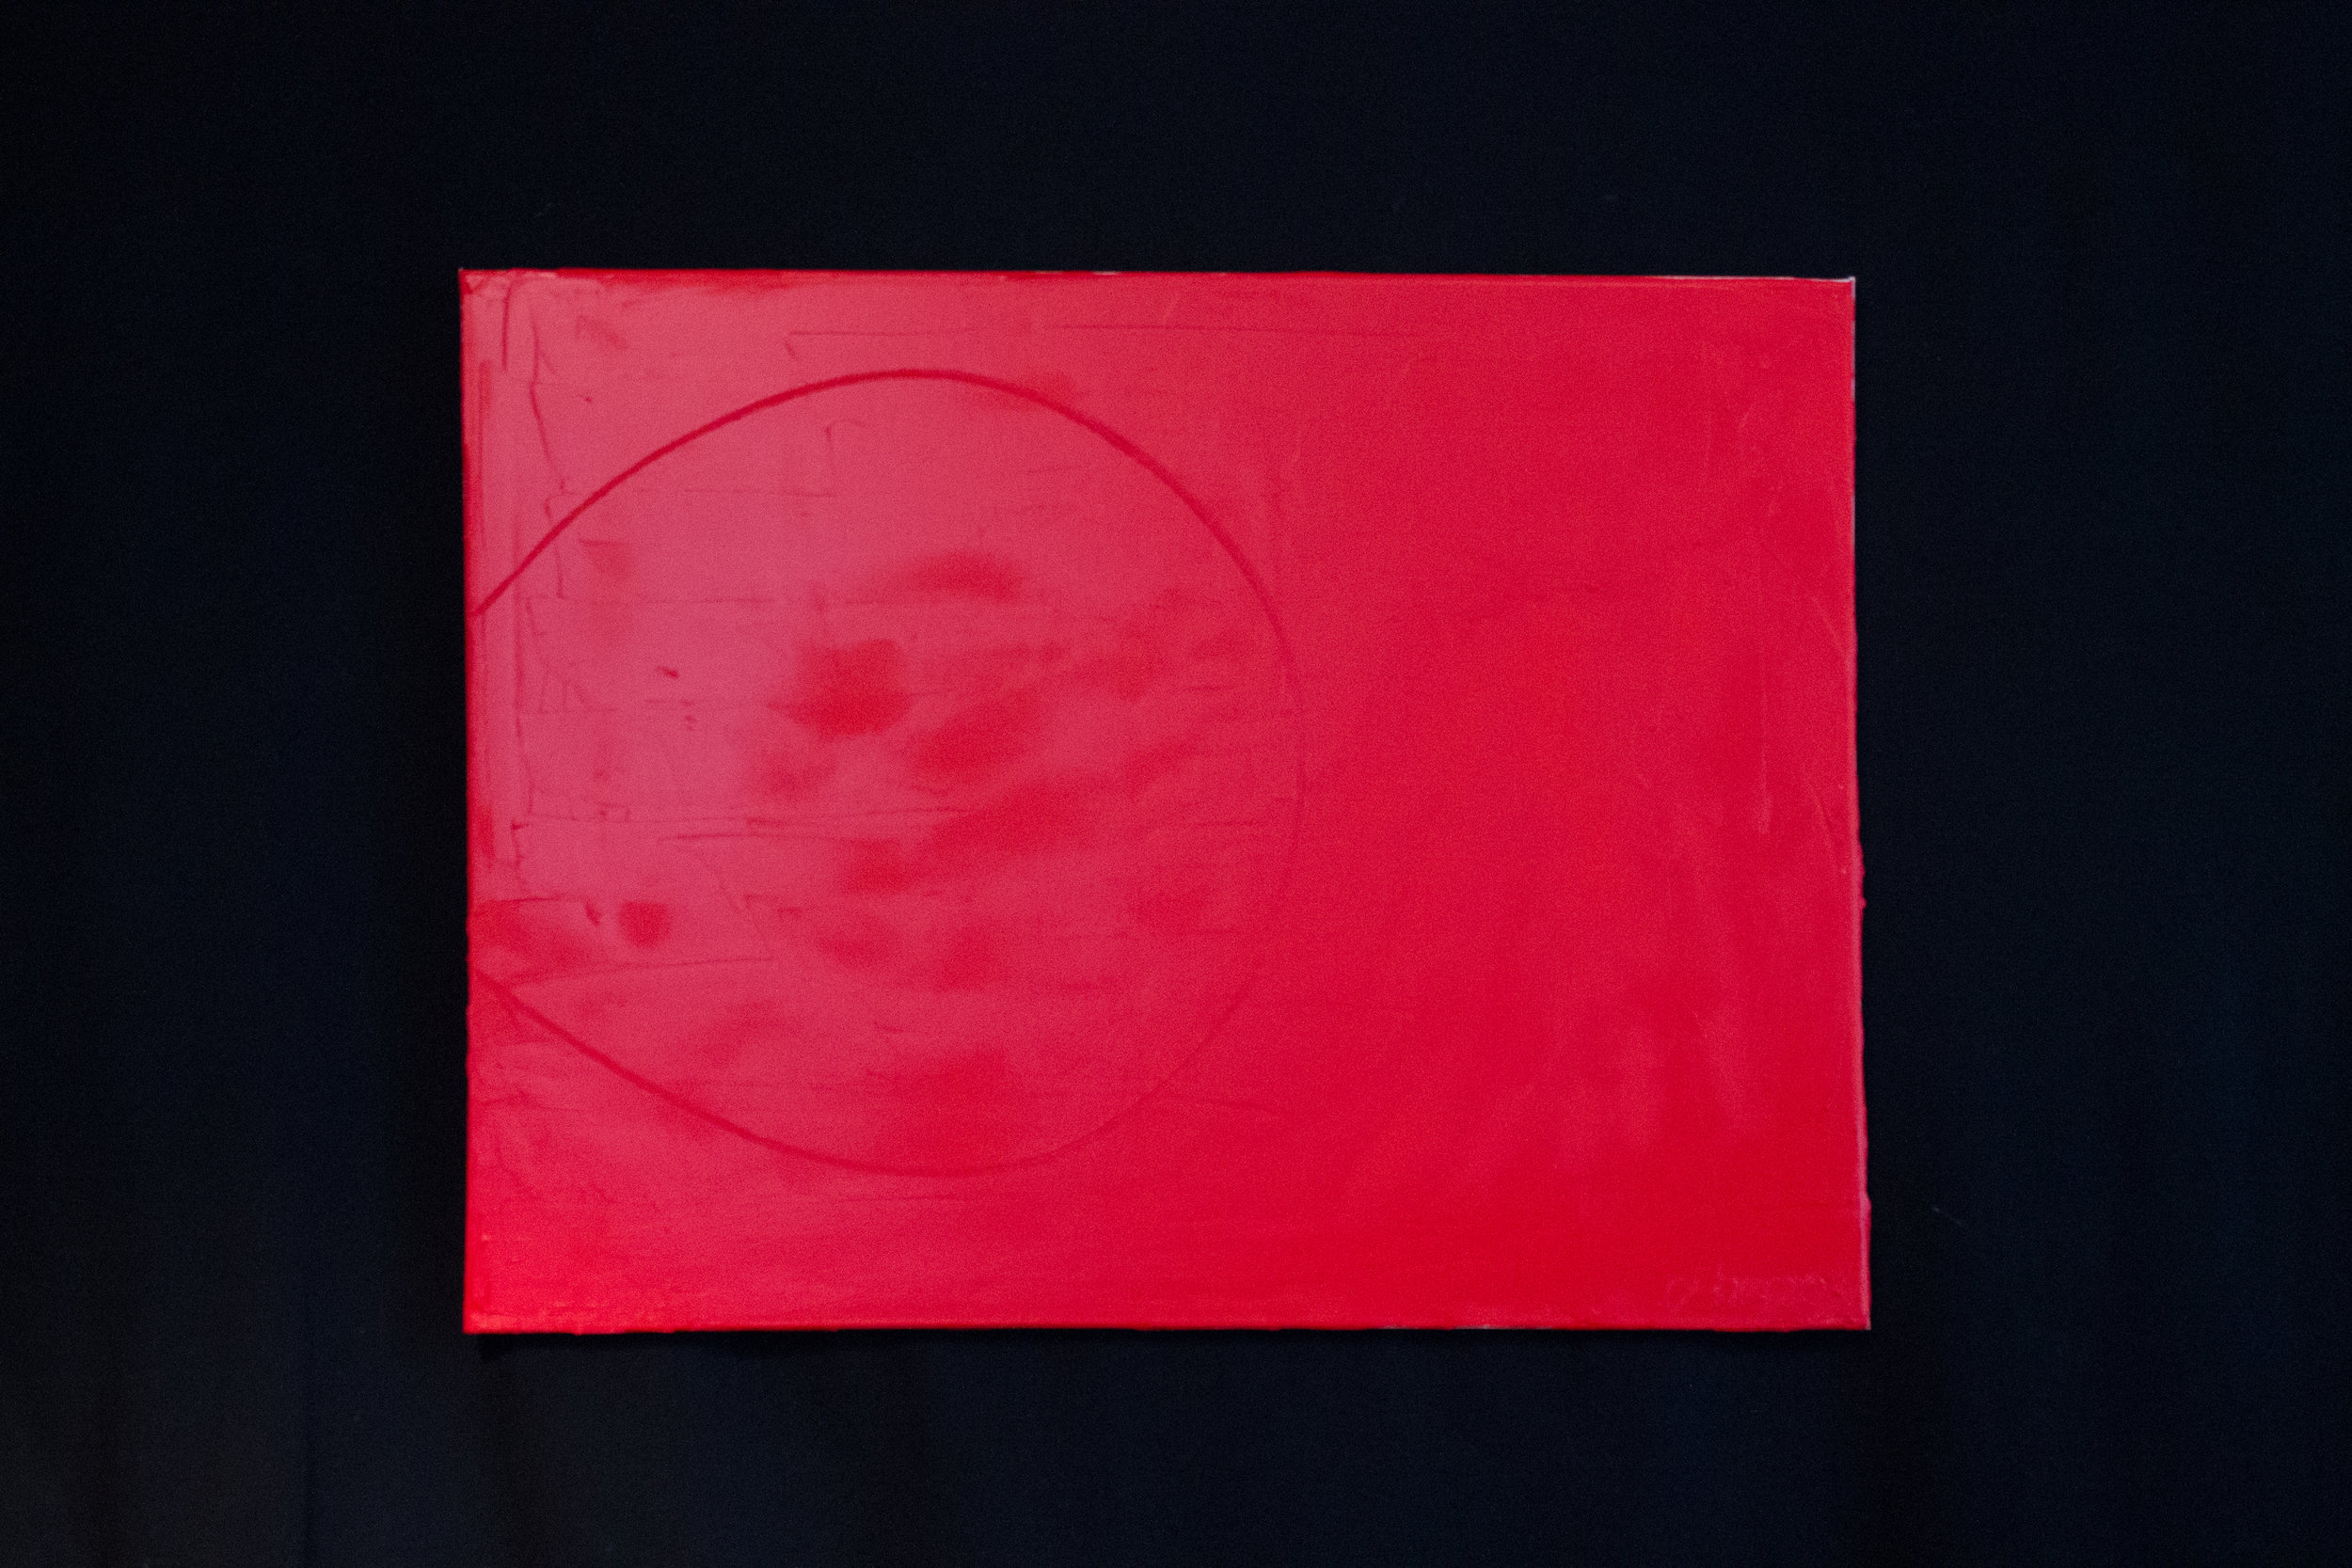 40. U-Turn in Red_60x80cm_2016_black.jpg